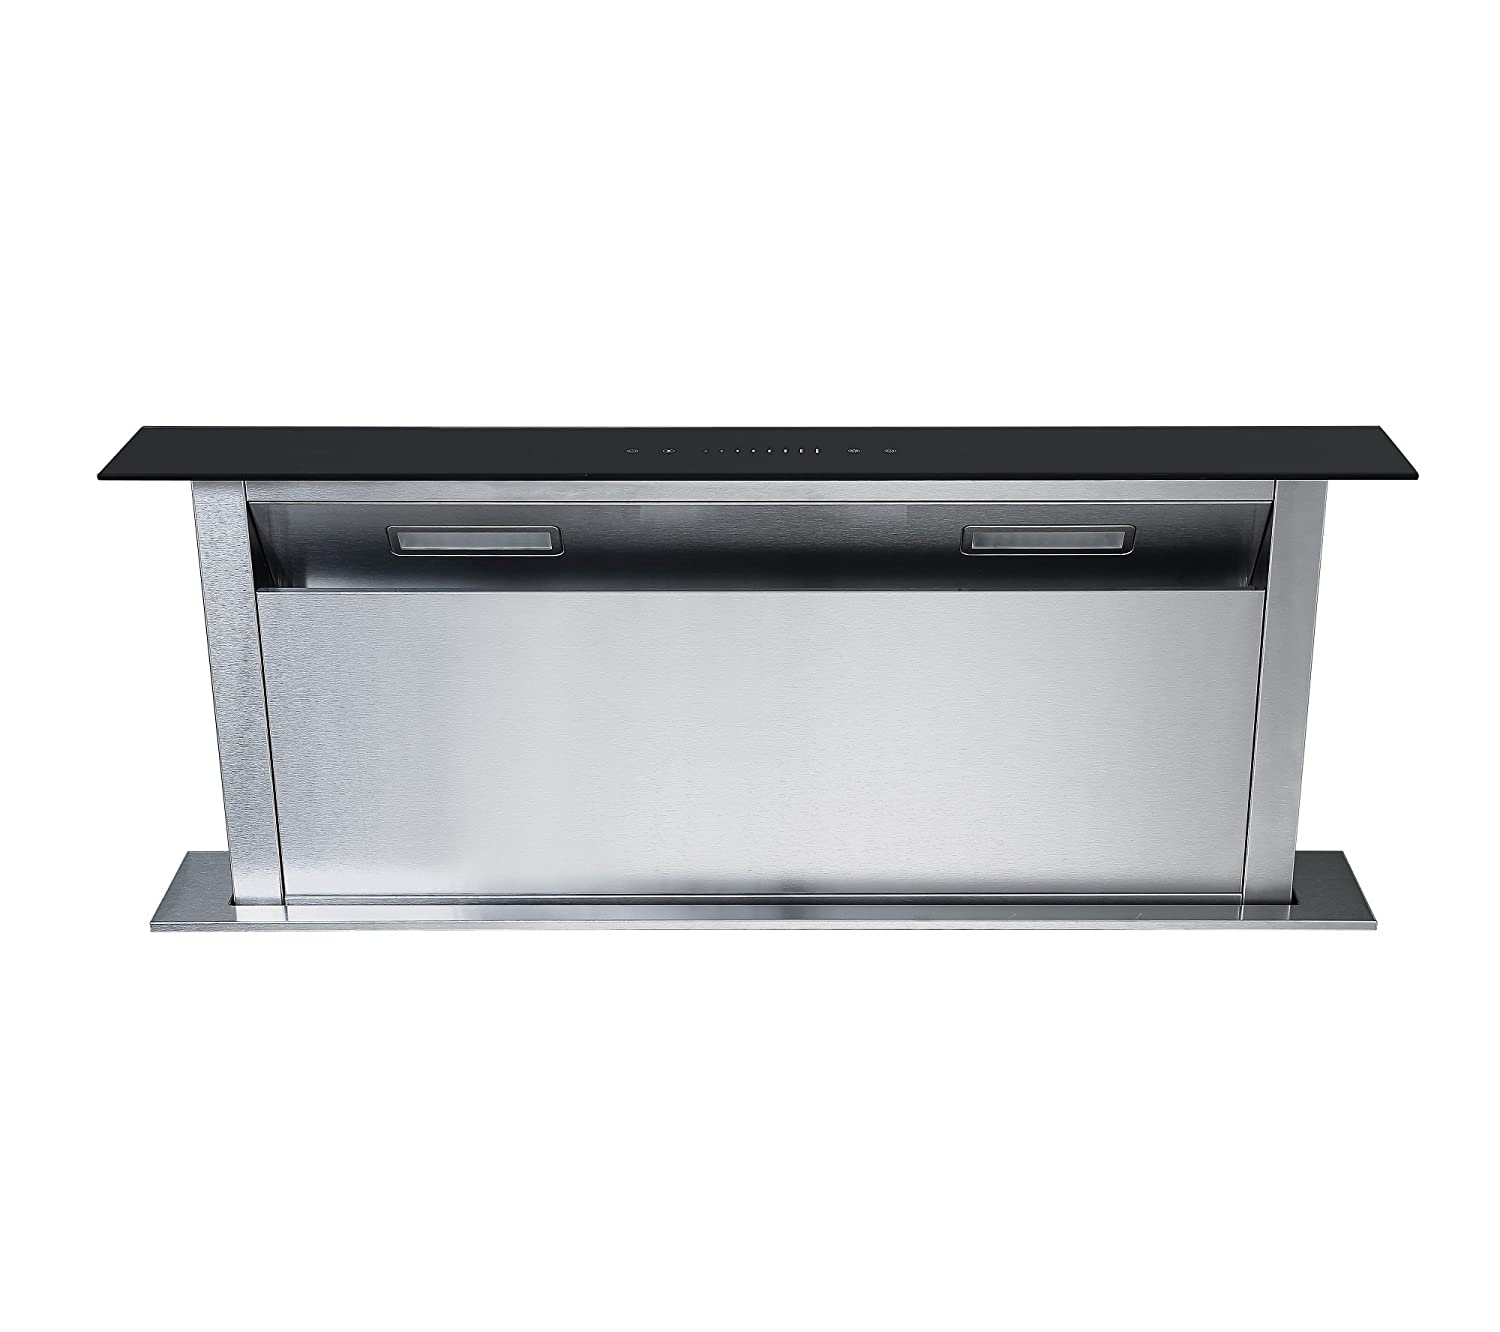 full of vent fan island size kitchen range hood exhaust stove ducted cart stainless inch oven